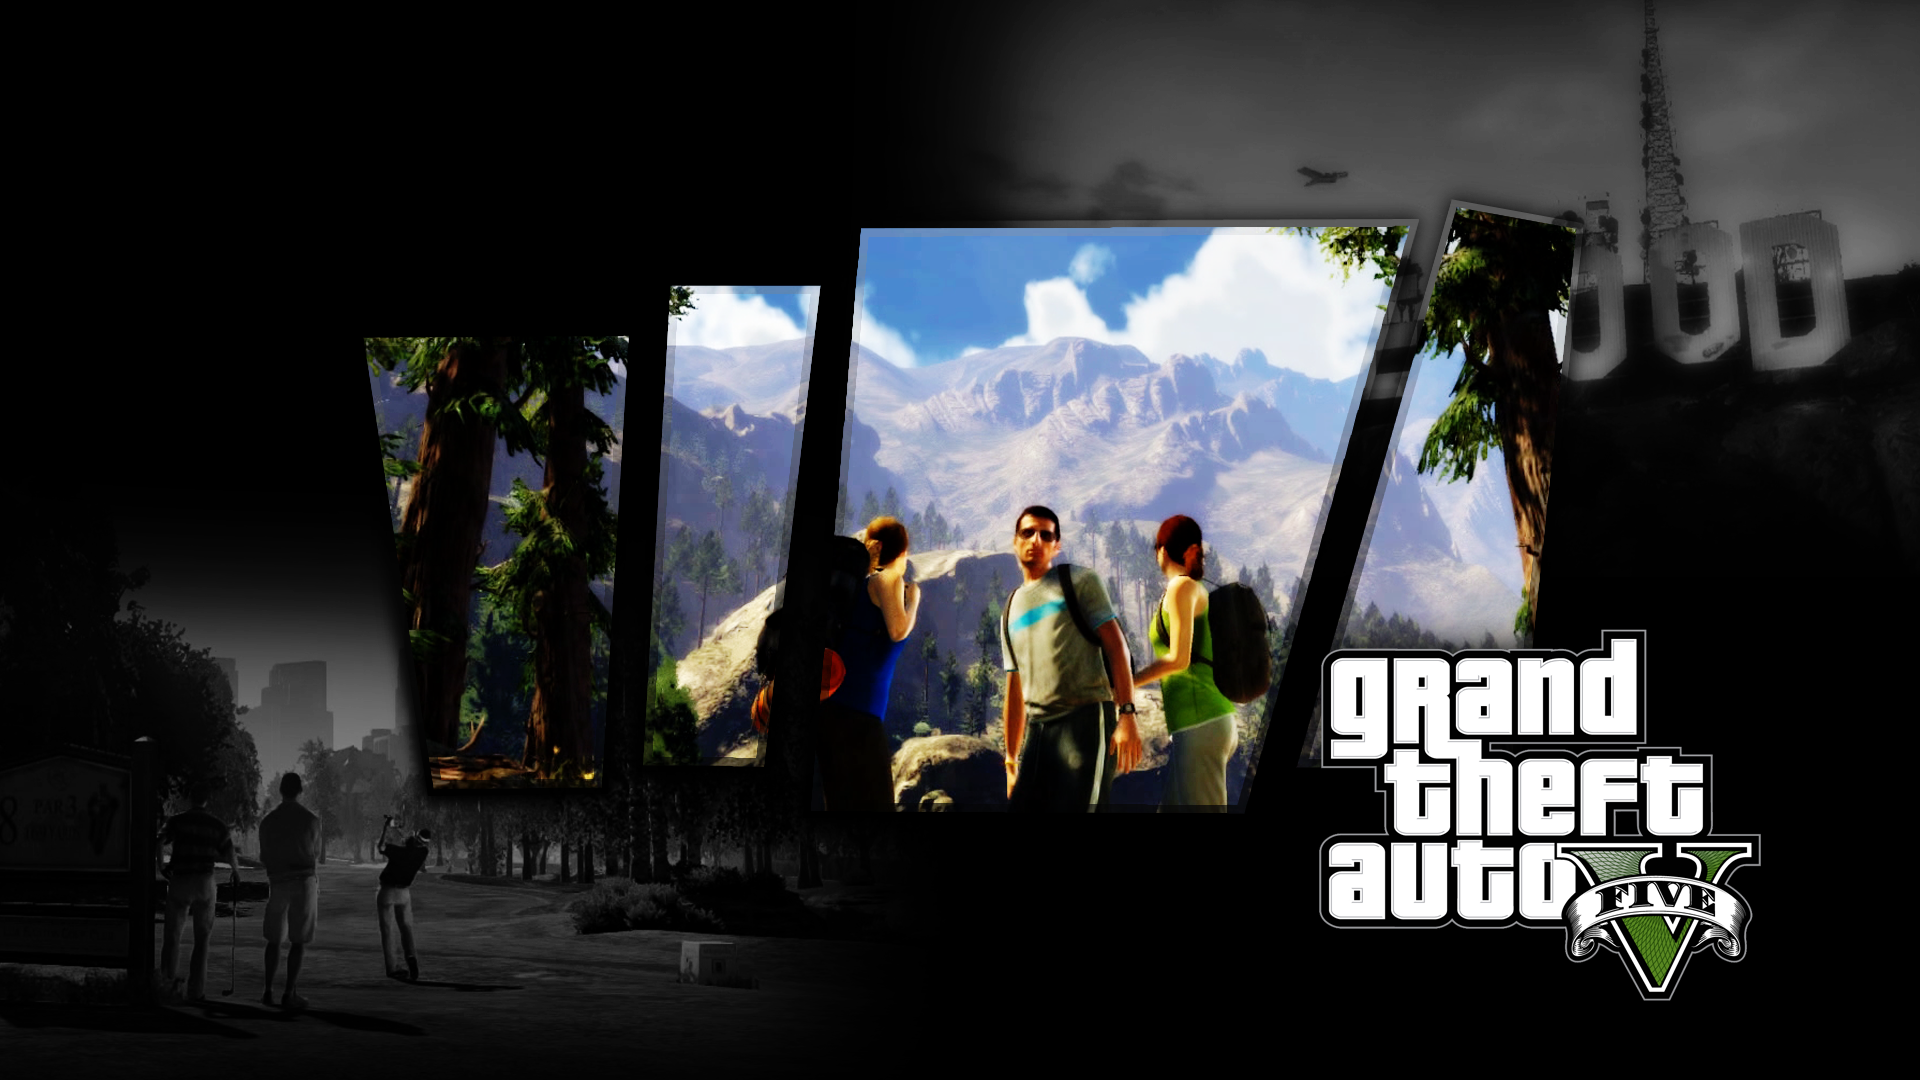 A mix of gta grand theft auto wallpapers c town gaming - Gta v wallpaper ...